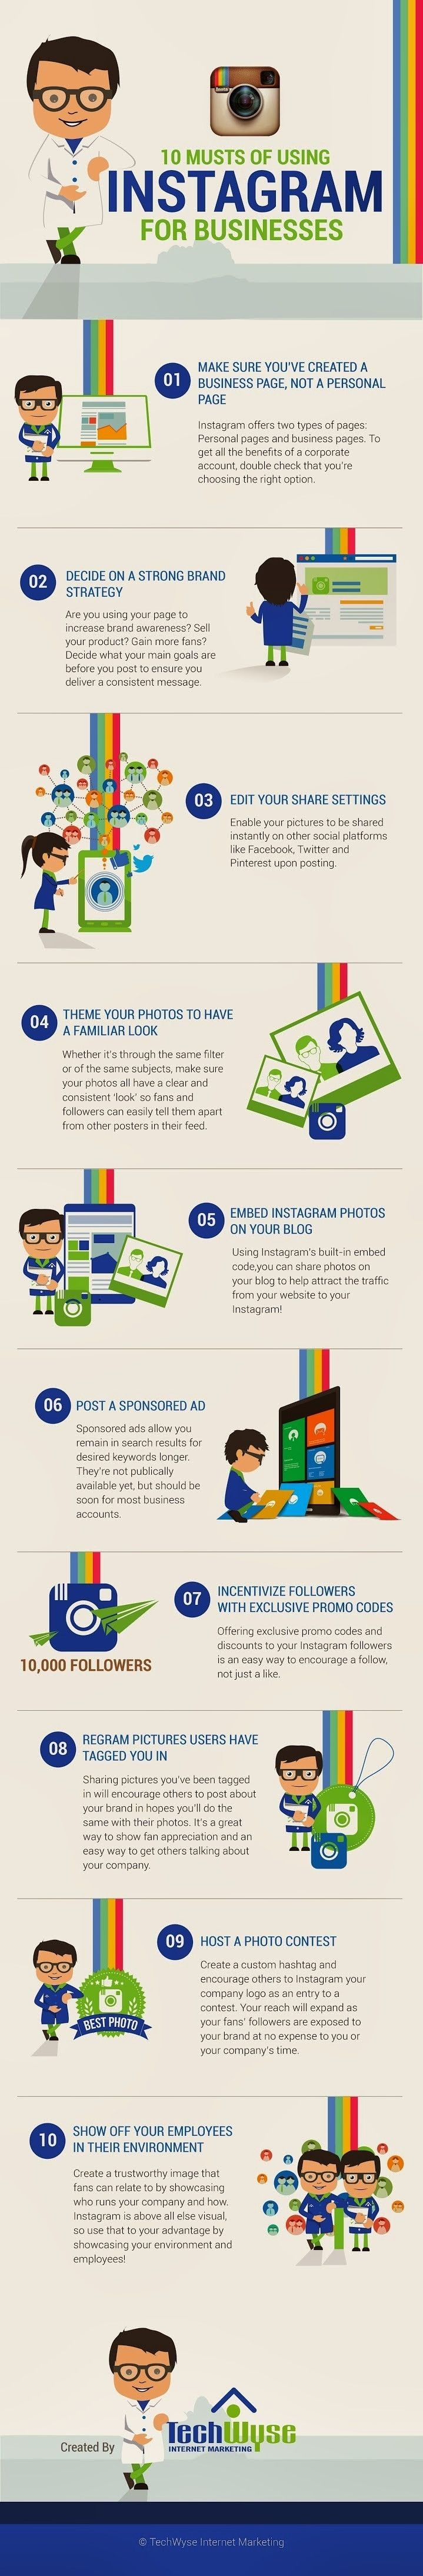 How To Use Instagram For Businesses [INFOGRAPHIC] - TechWyse | Instagram | Scoop.it